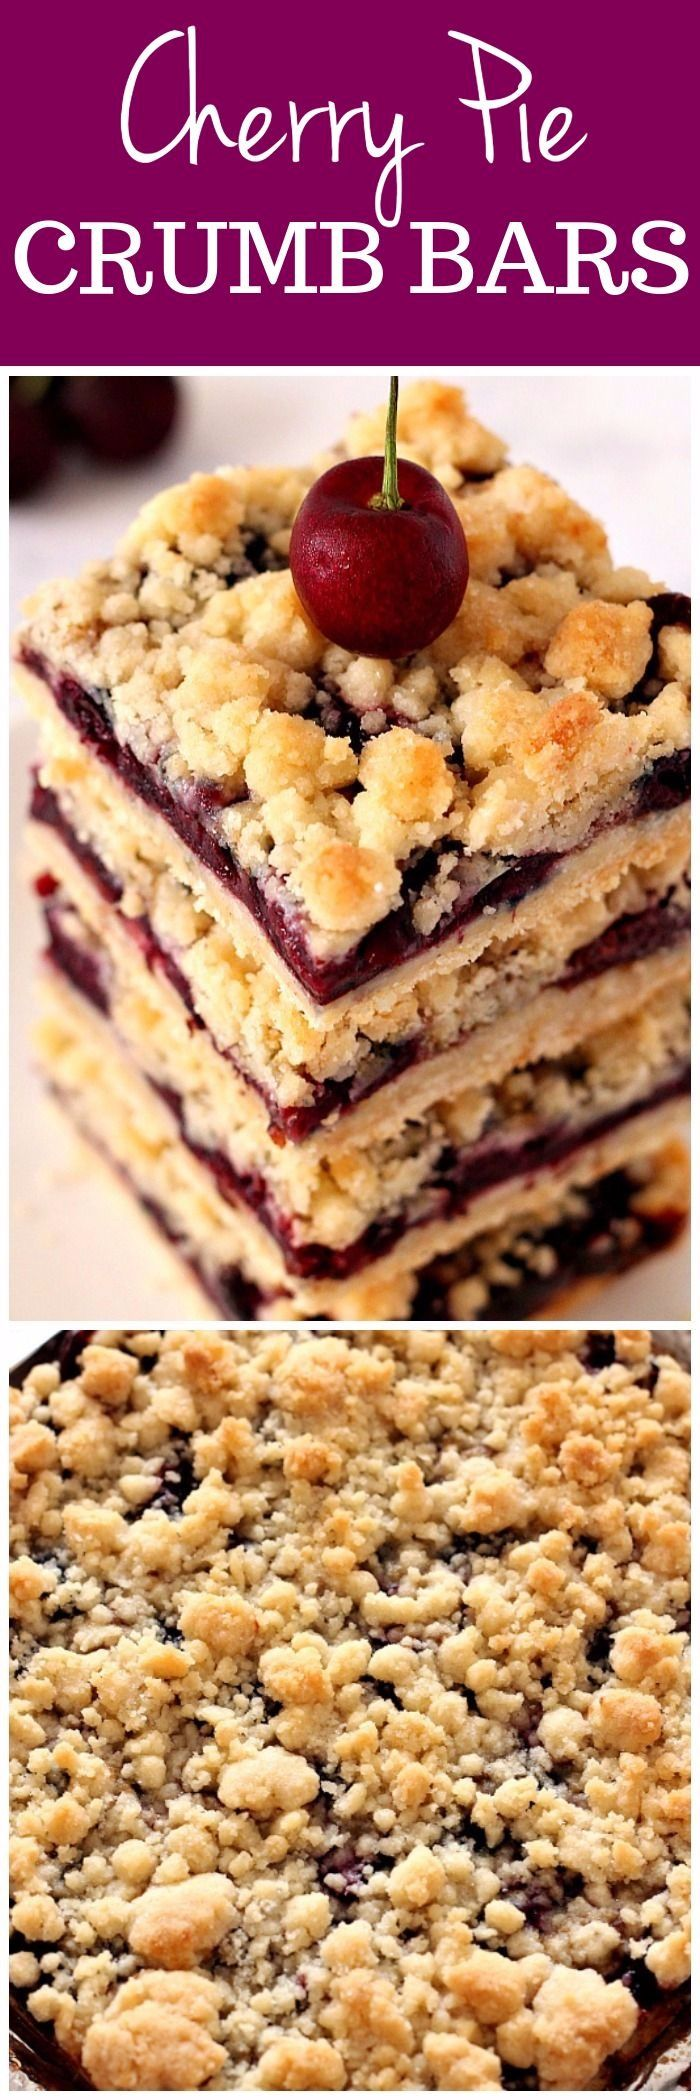 Cherry Pie Crumb Bars Recipe - quick and easy crumb bars with fresh cherry filling. Buttery crumb topping and sweet fruit filling make this a perfect summer dessert!